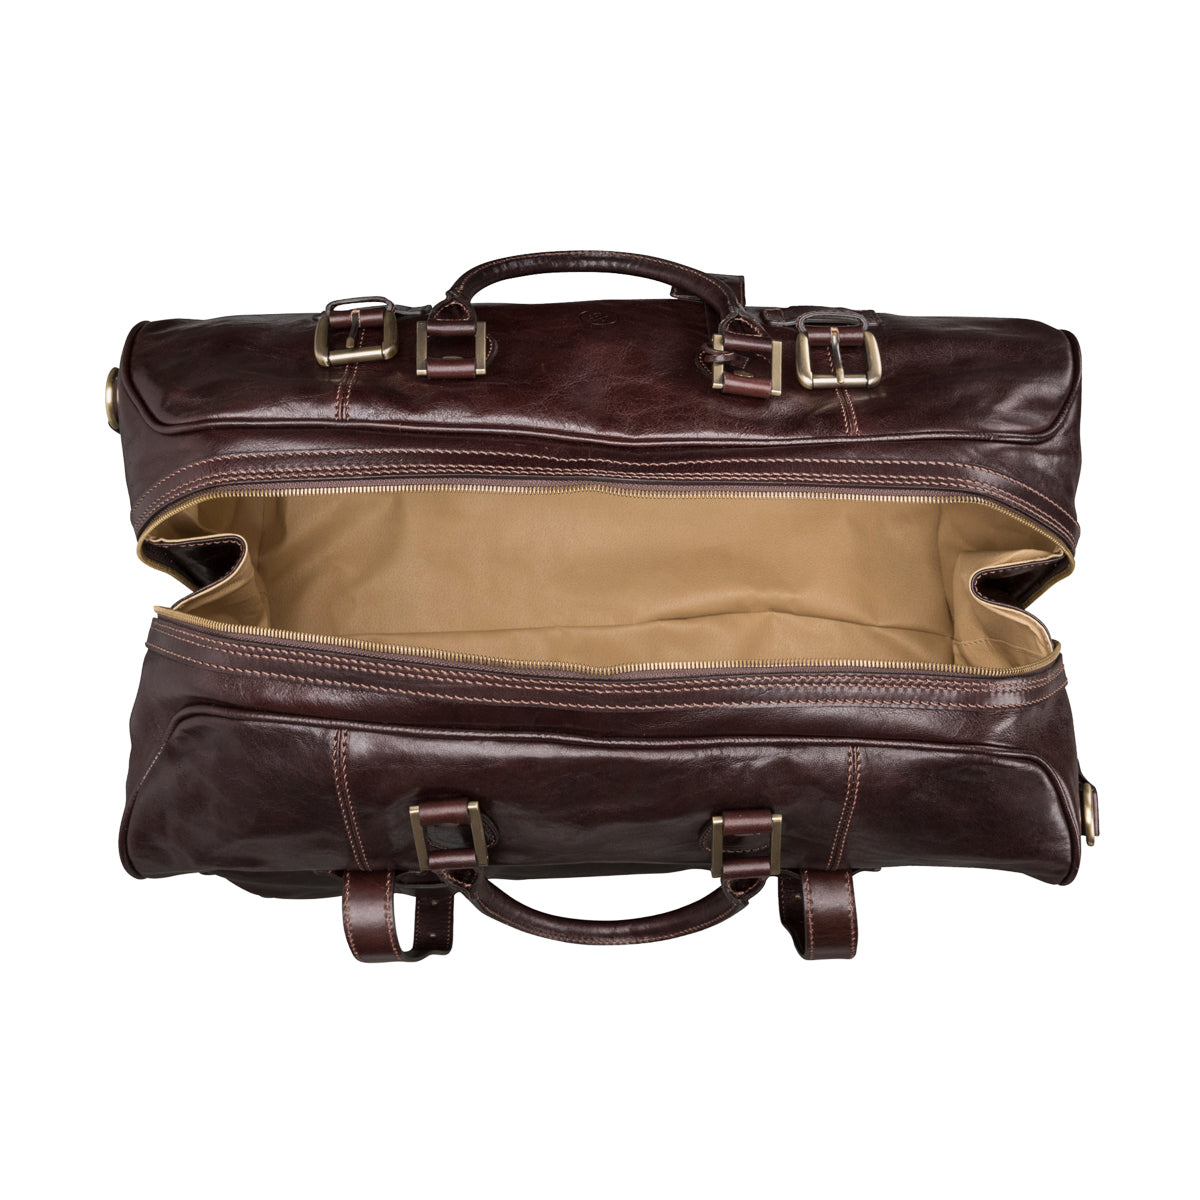 Image 6 of the Large 'Flero' Dark Chocolate Veg-Tanned Leather Holdall